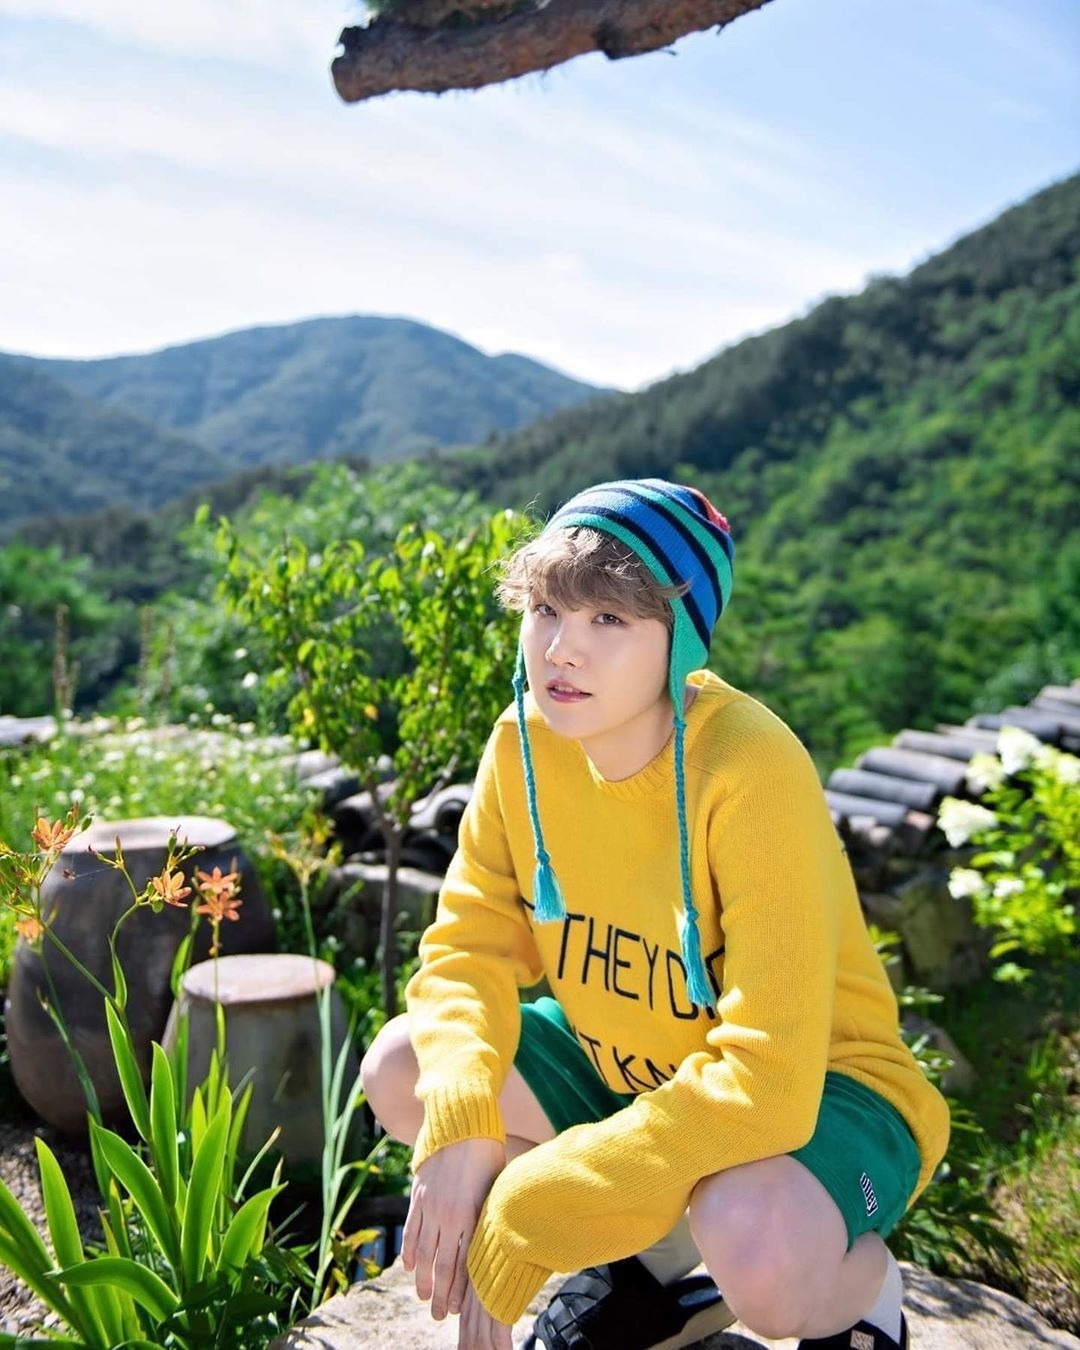 #BTS #SUGA 2019 SUMMER PACKAGE in KOREA #btssummerpackage2019